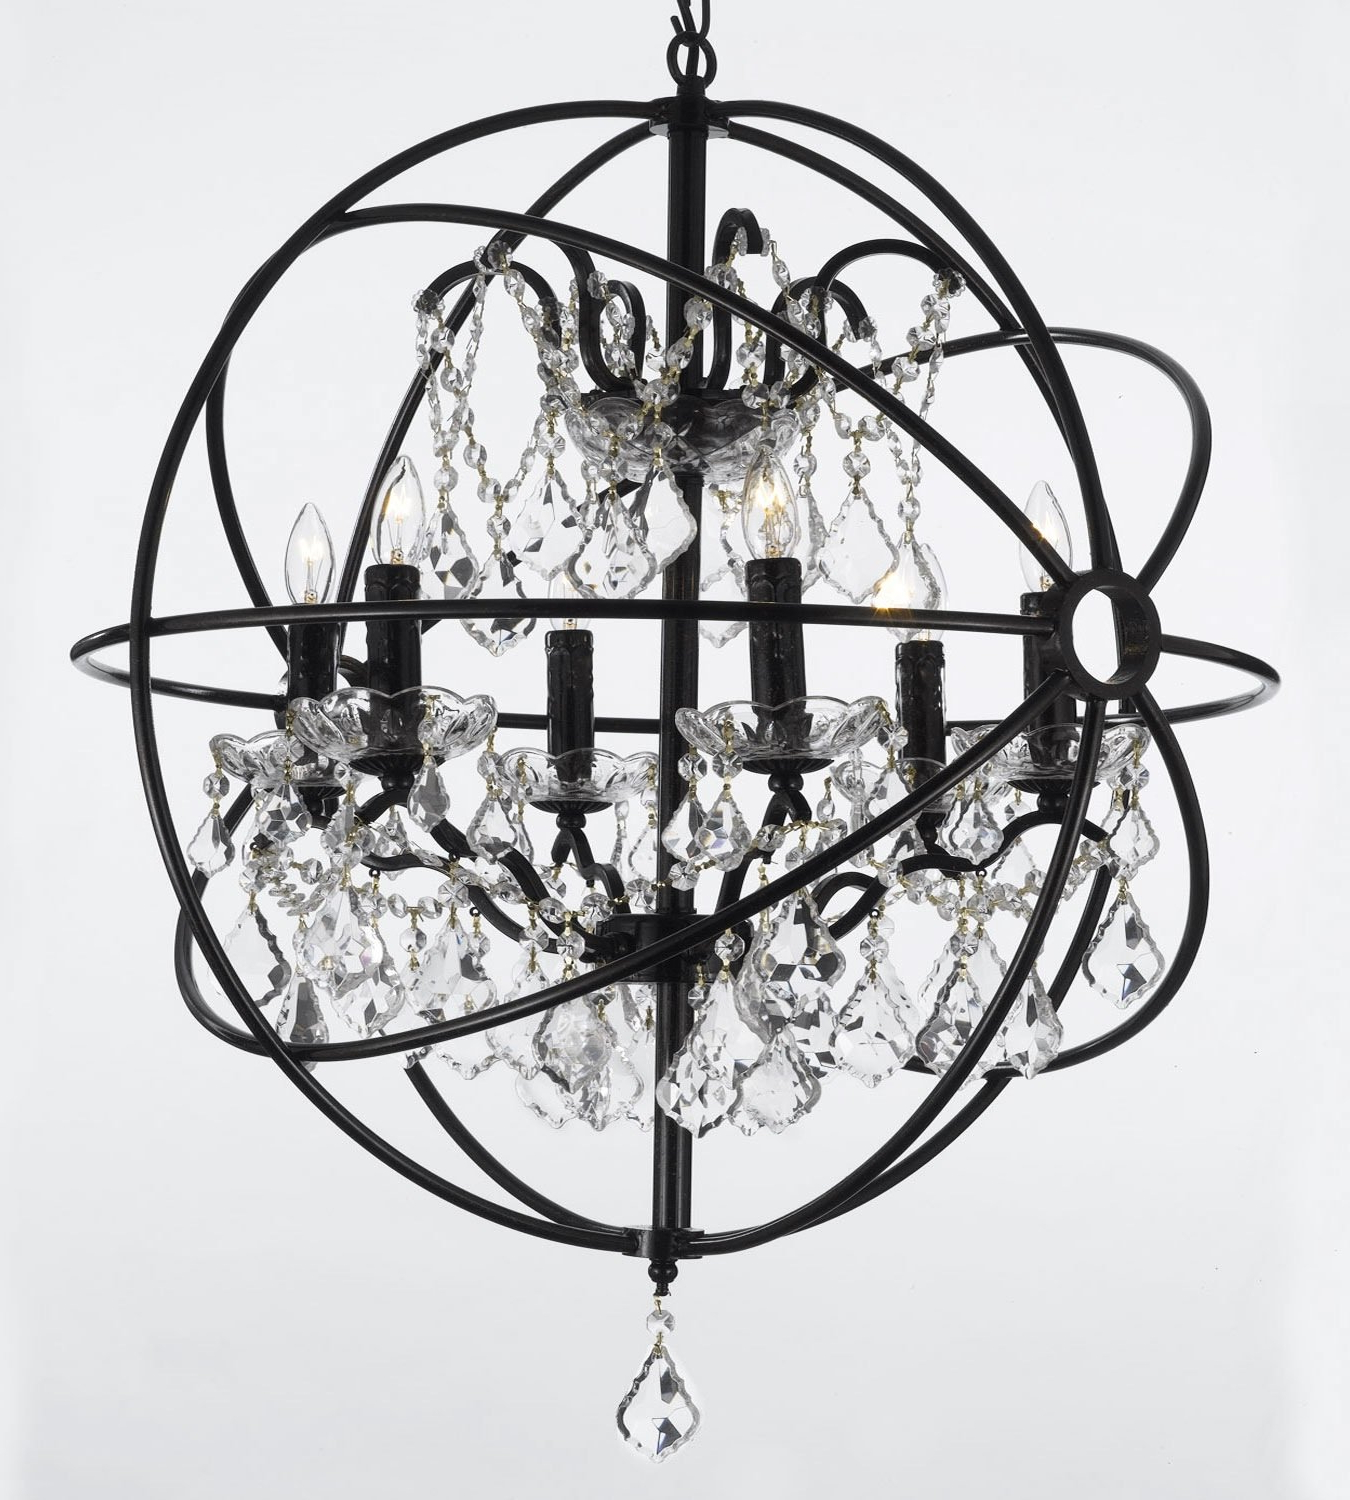 Calderdale Orb 6 Light Globe Chandelier For Well Liked Eastbourne 6 Light Unique / Statement Chandeliers (Gallery 19 of 20)